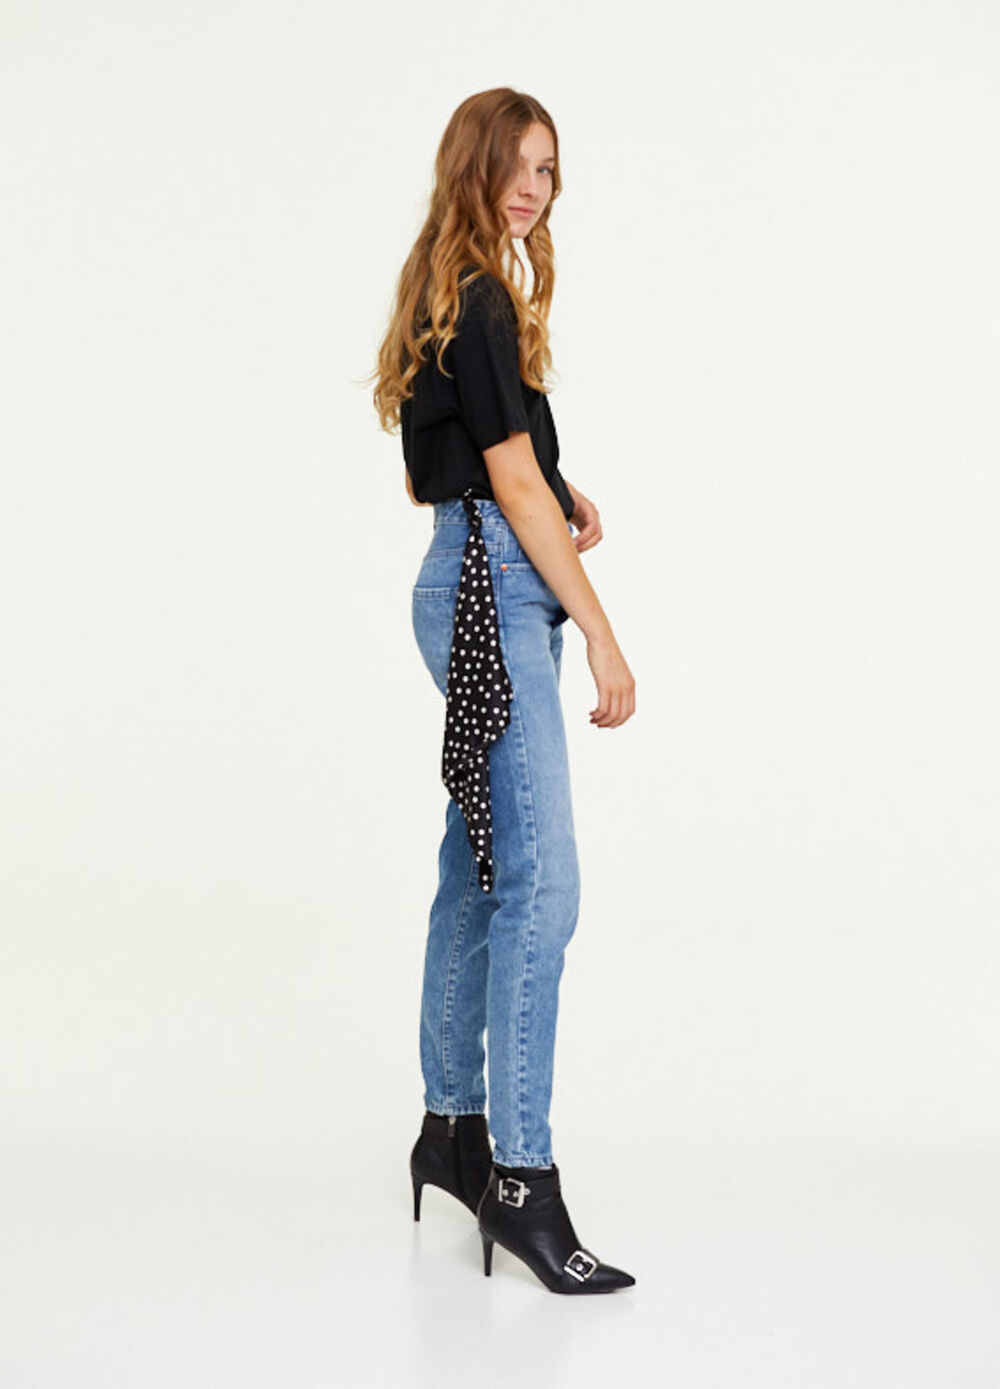 Reworked heritage mum-fit jeans